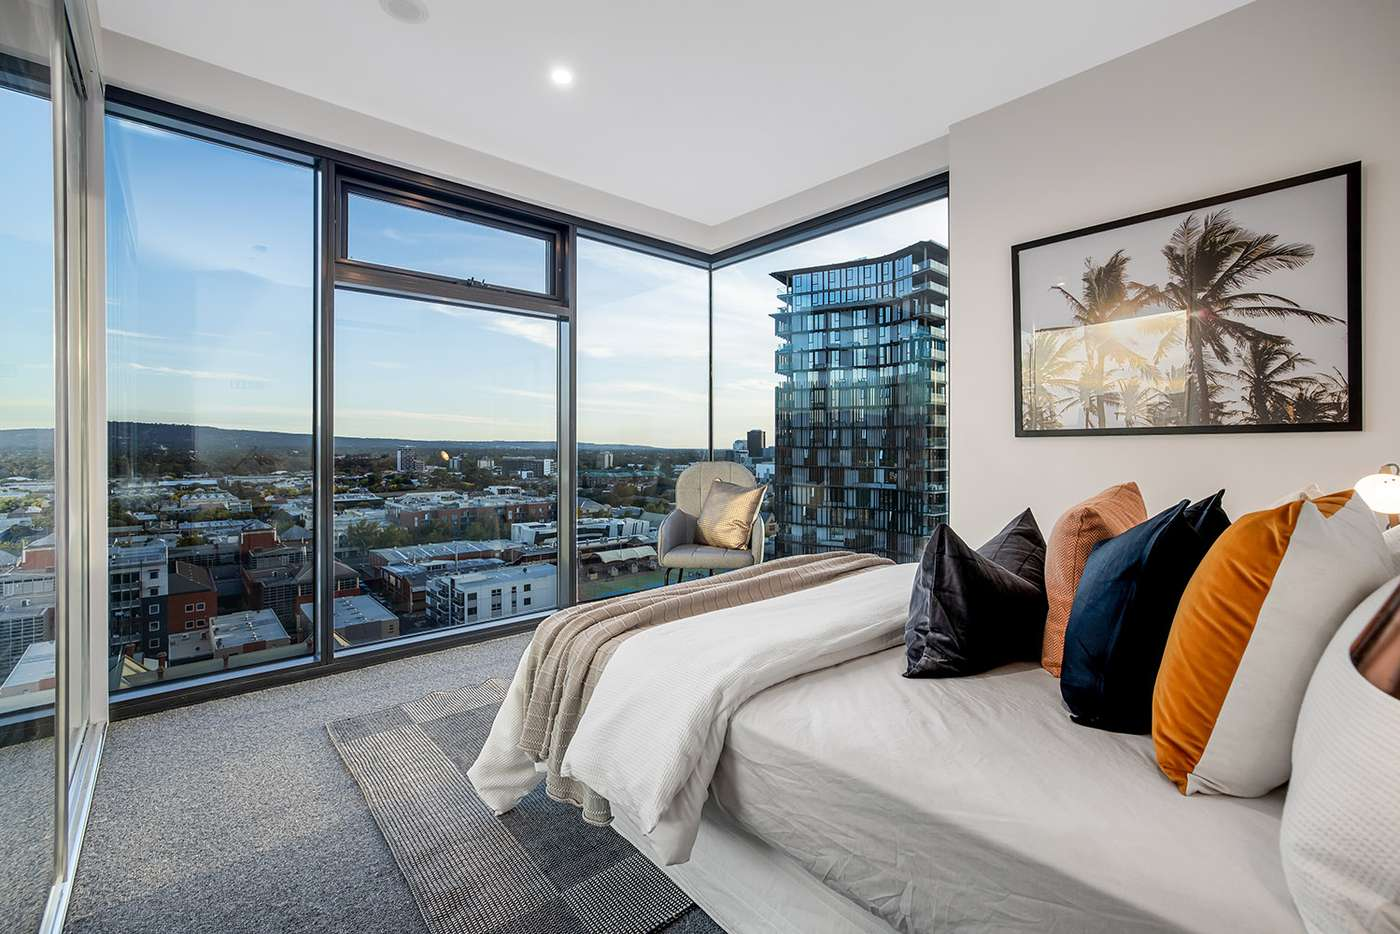 Main view of Homely apartment listing, 901/297 Pirie Street, Adelaide SA 5000